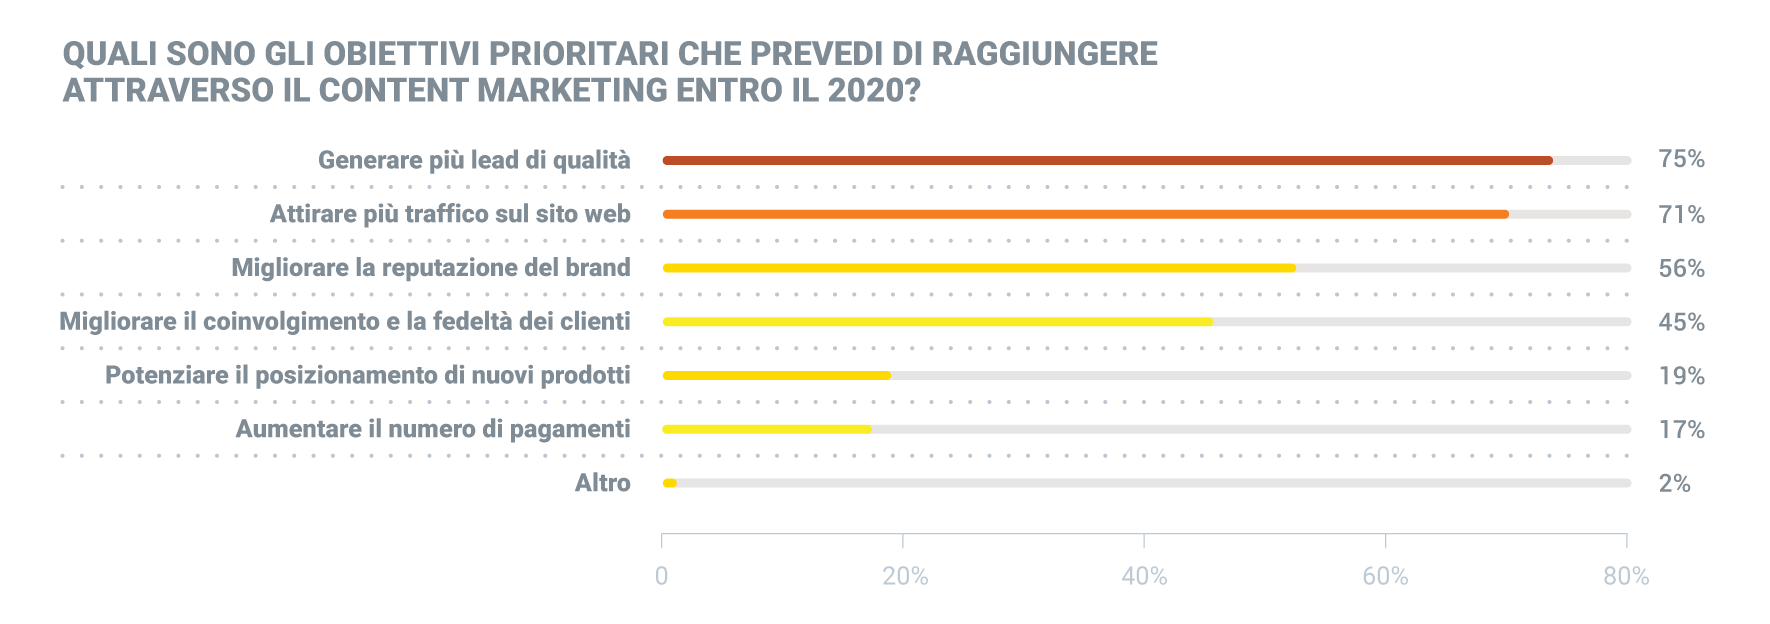 obiettivi del content marketing